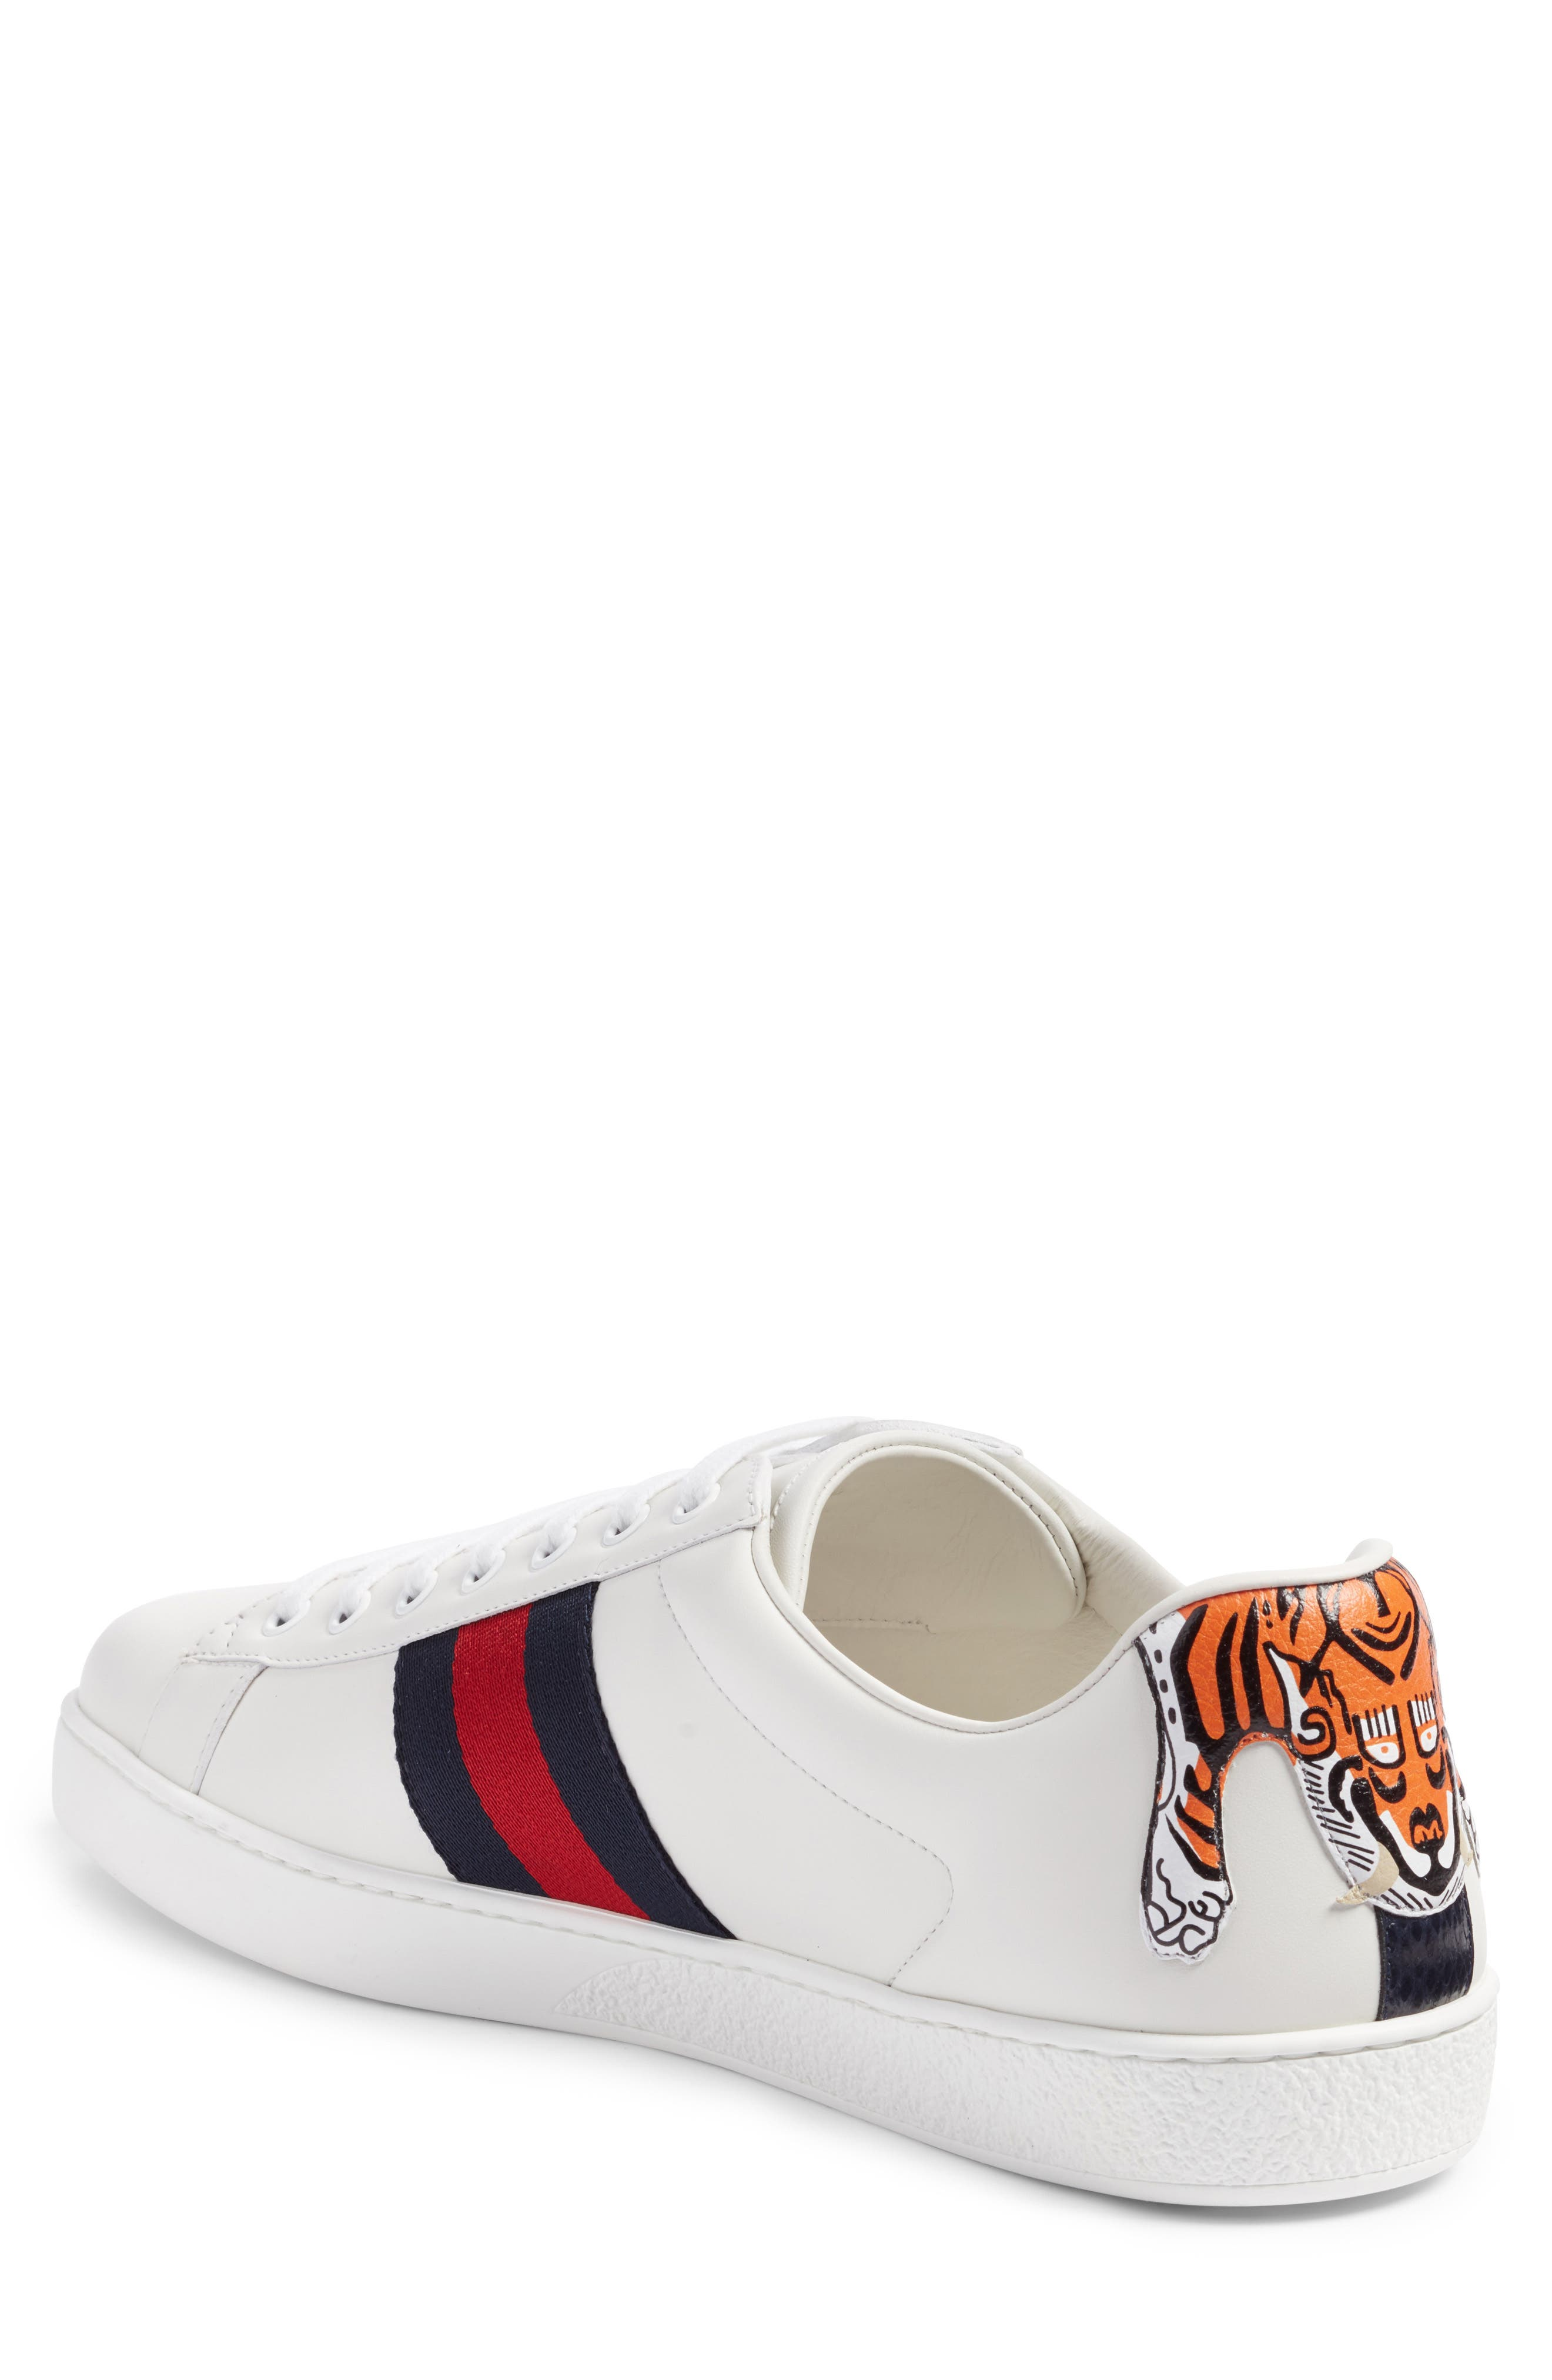 New Ace Tiger Sneaker,                             Alternate thumbnail 2, color,                             176